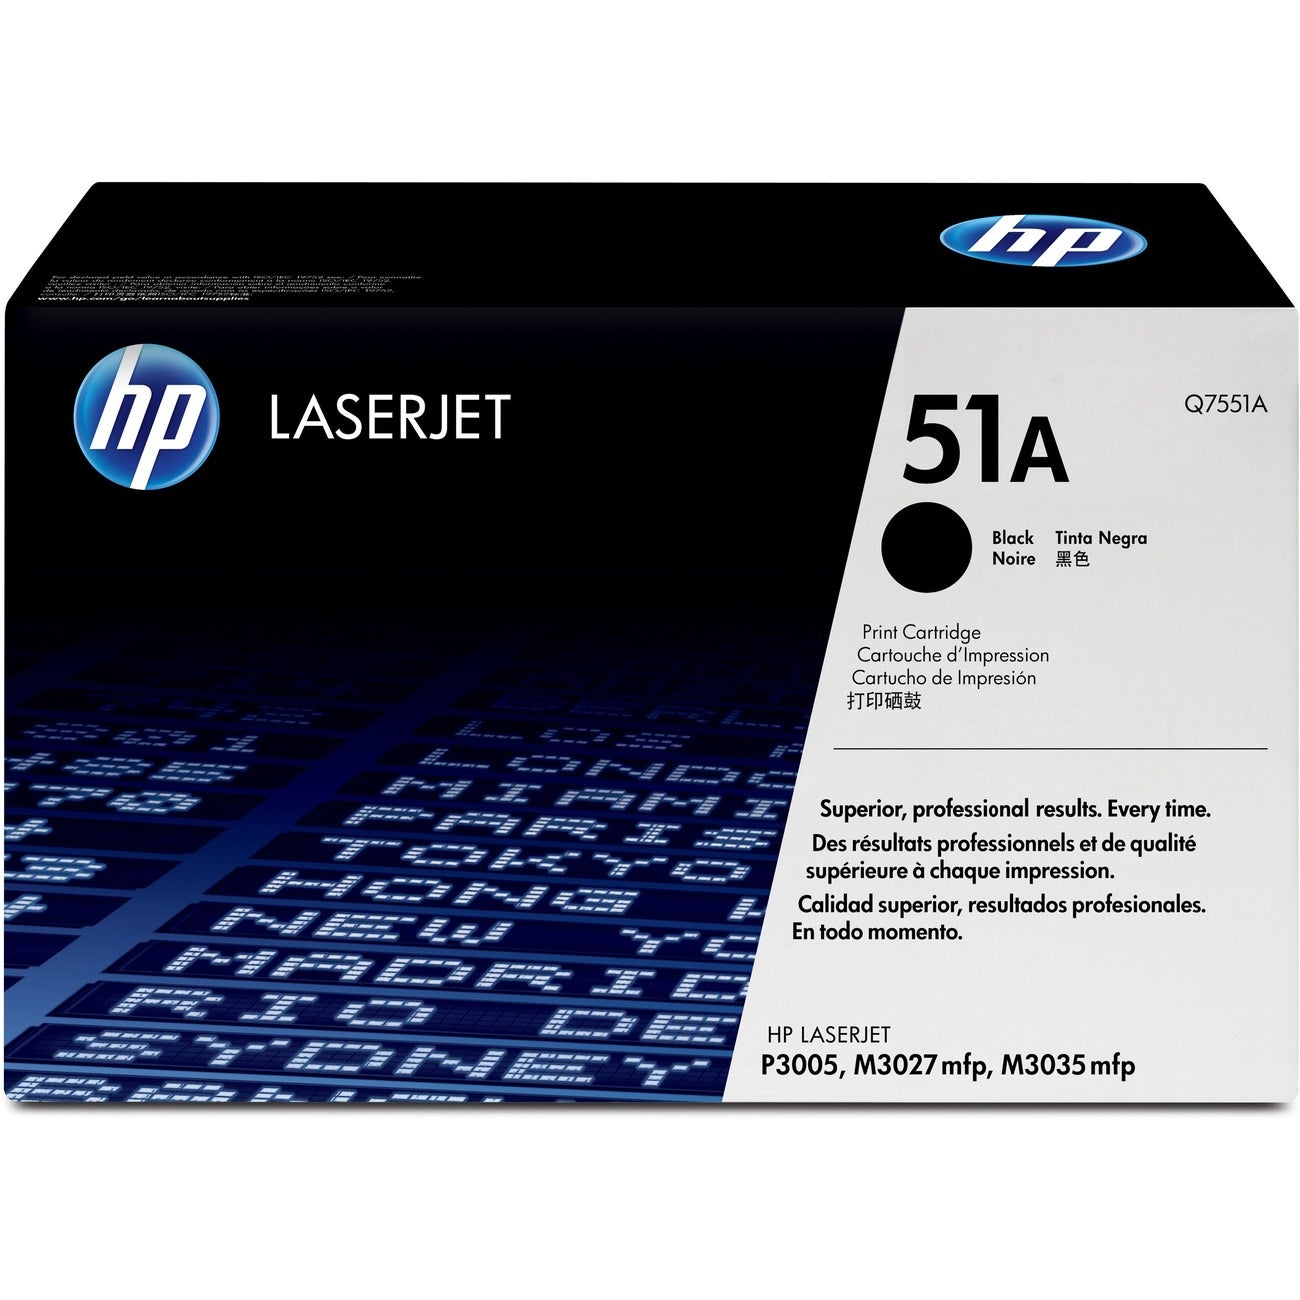 HP Black Toner Cartridge for LaserJet Tonr P3005/M3035 MFP